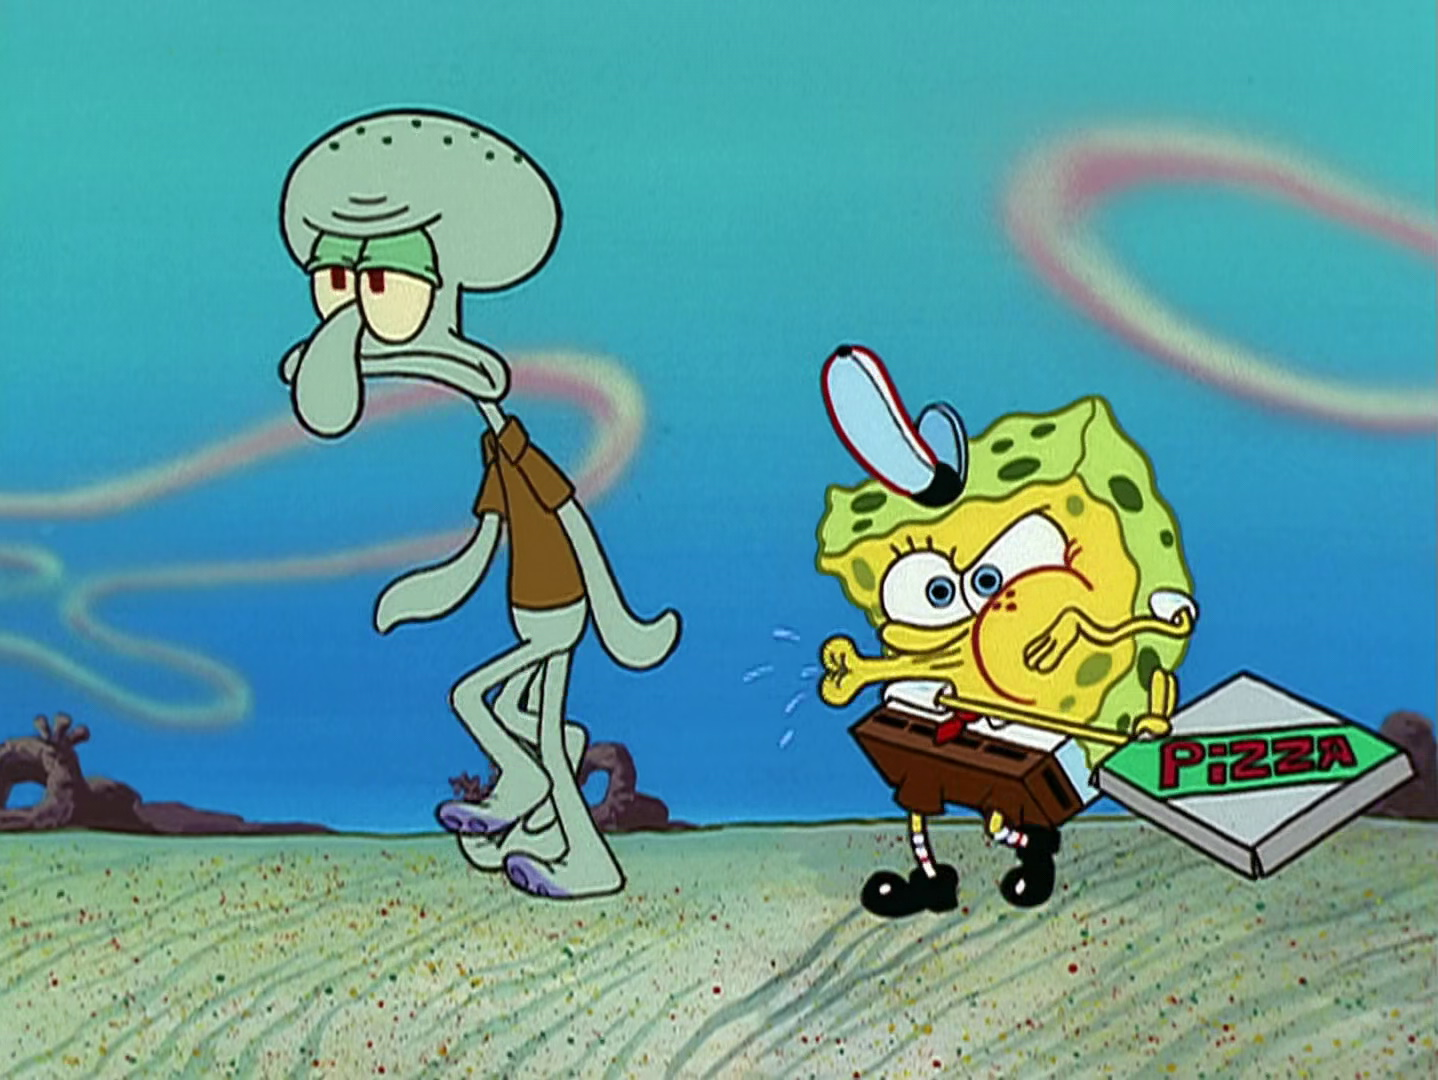 File:Pizza Delivery (SpongeBob and Squidward).jpg